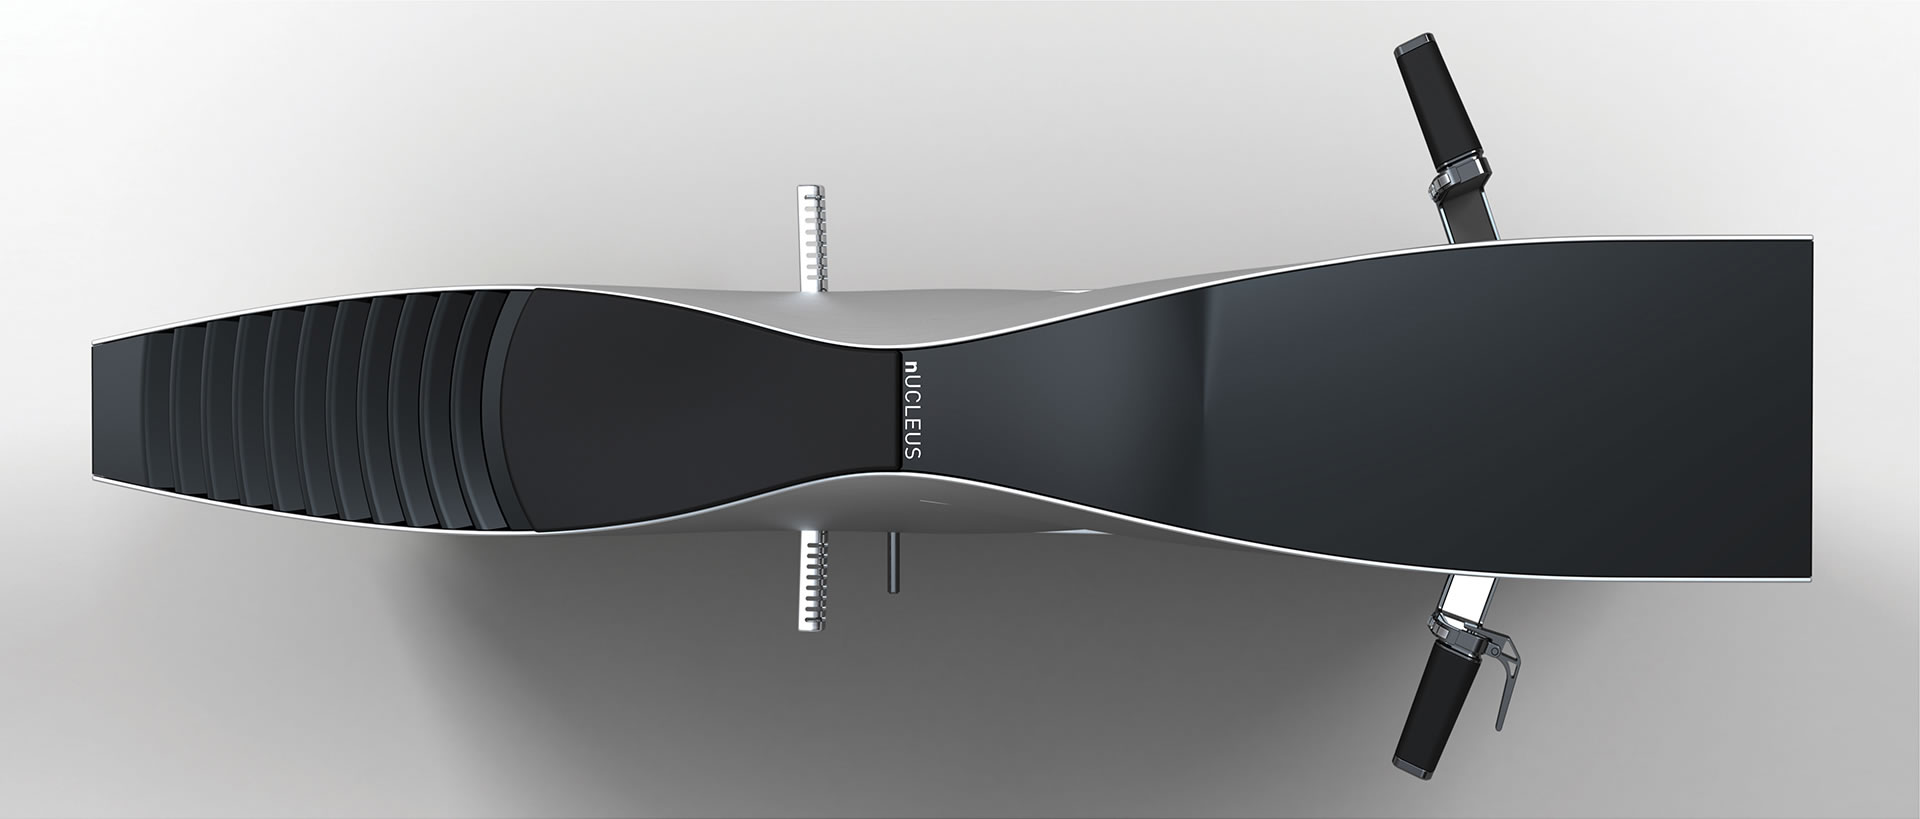 Nucleus electric motorcycle top view